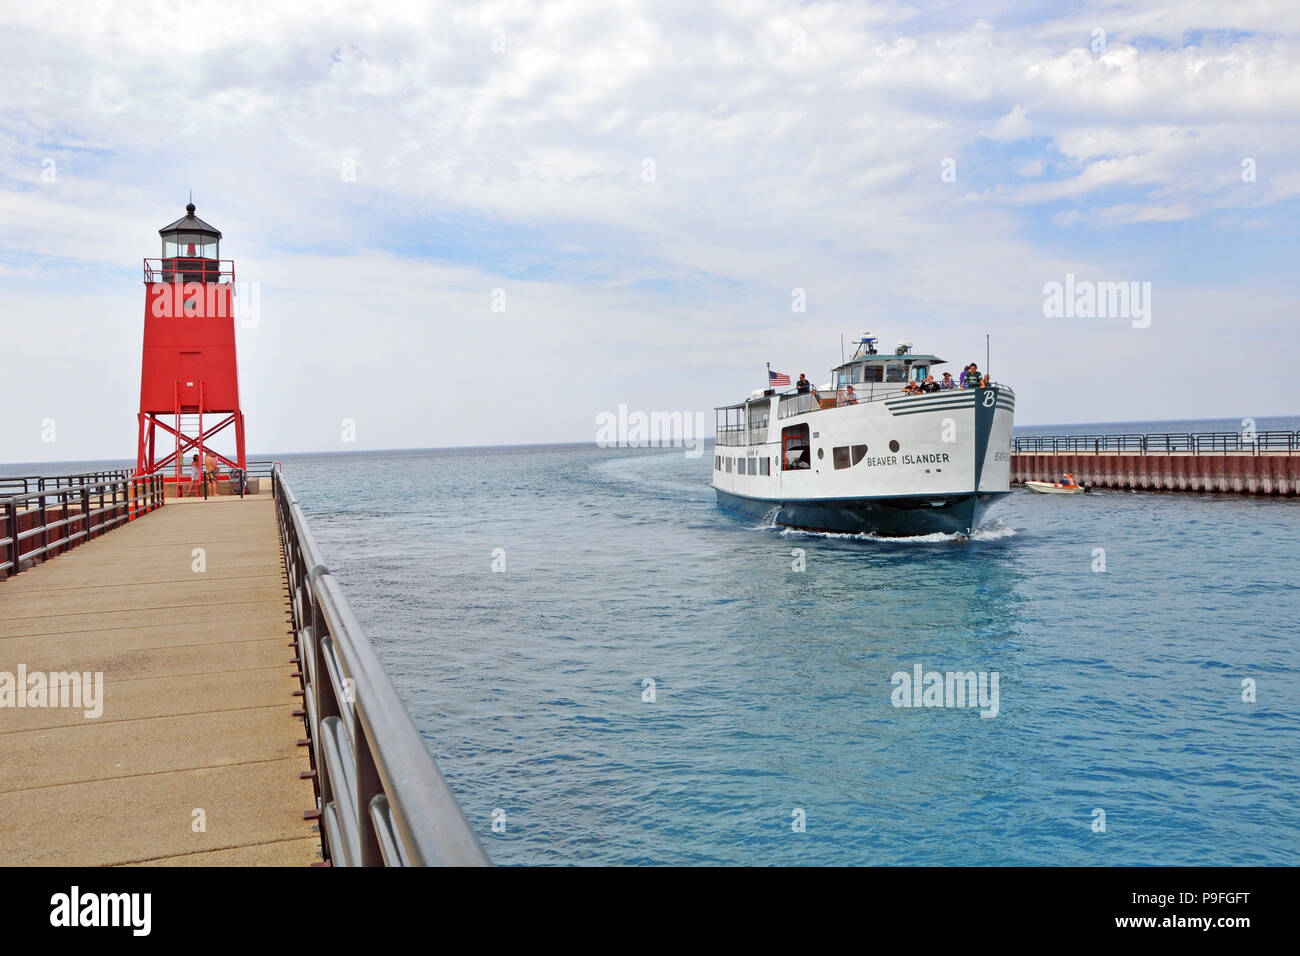 Beaver Islander ferry passes the Charlevoix South Pier Lighthouse on the Island Lake Outlet going from Lake Michigan to Charlevoix Lake (Michigan). - Stock Image